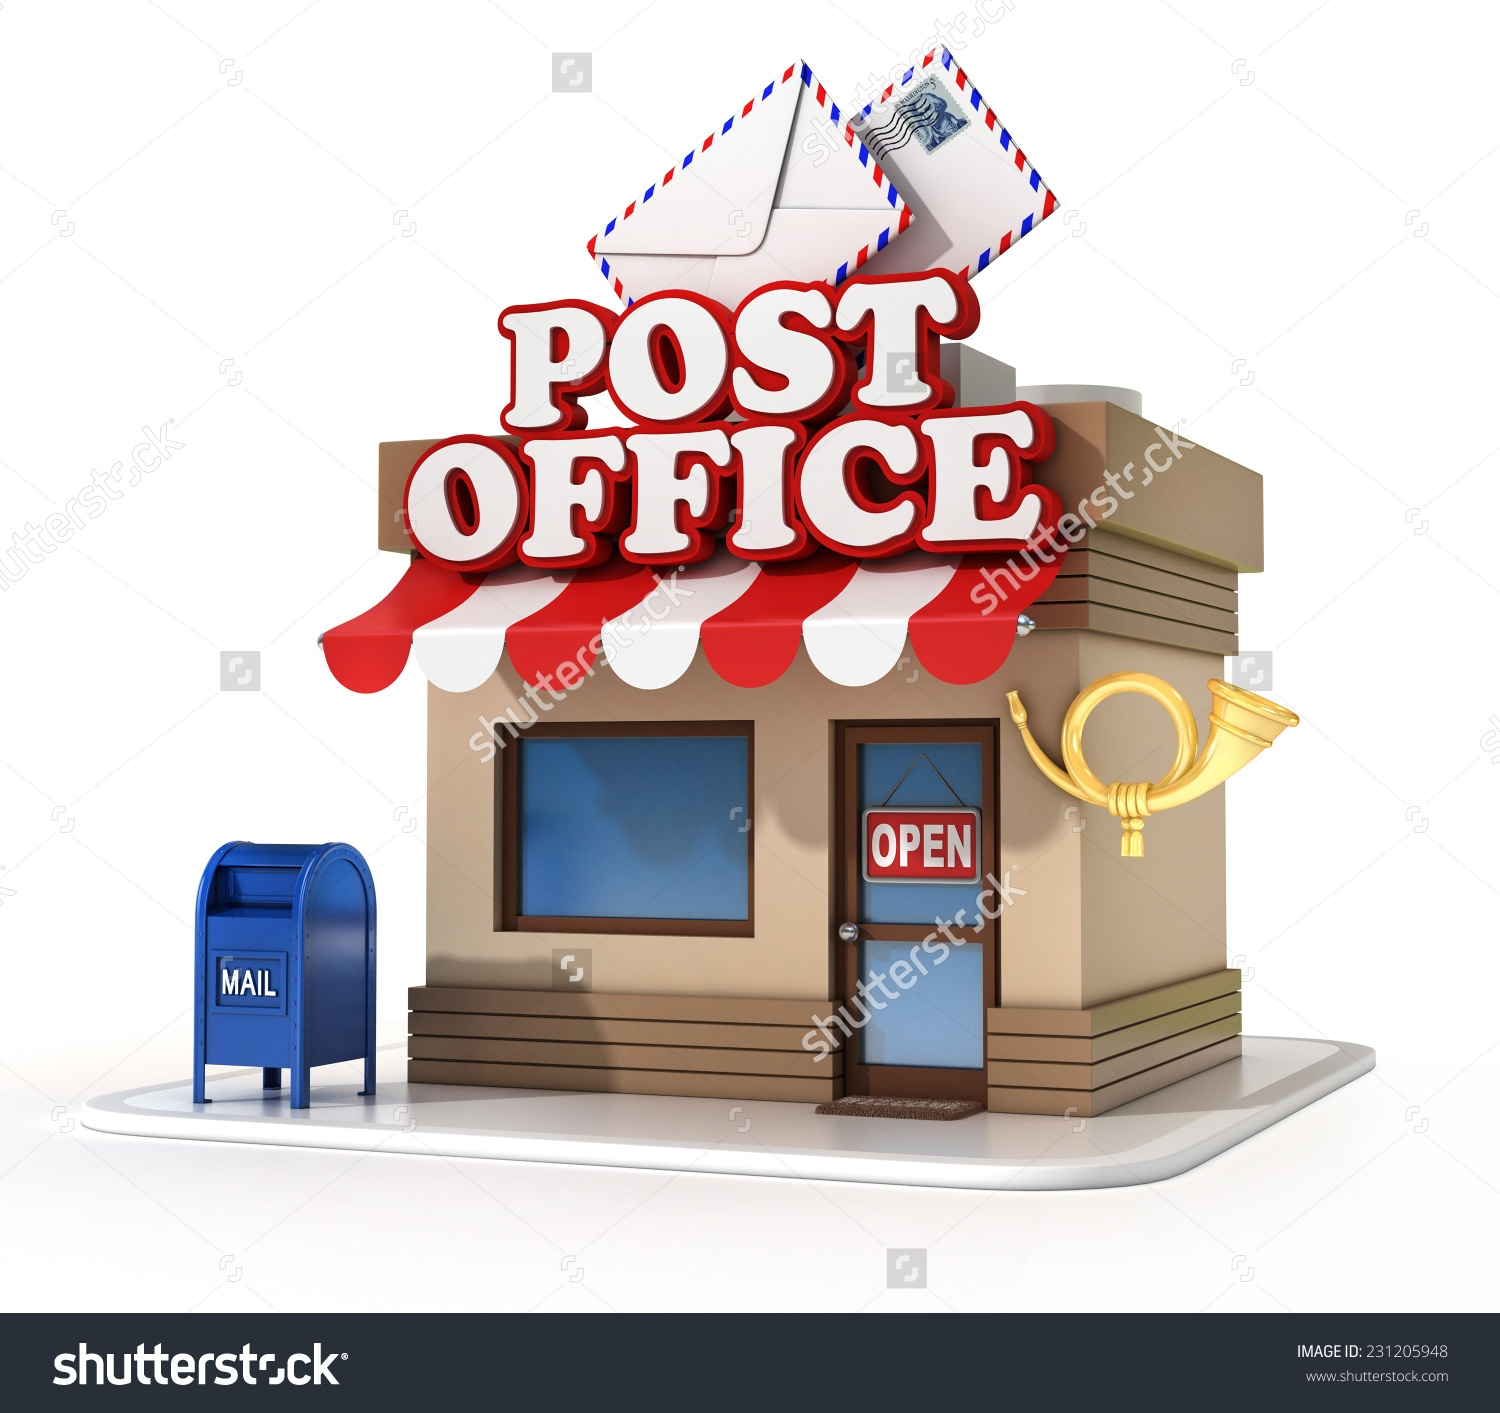 Federal post office clipart - Clipground